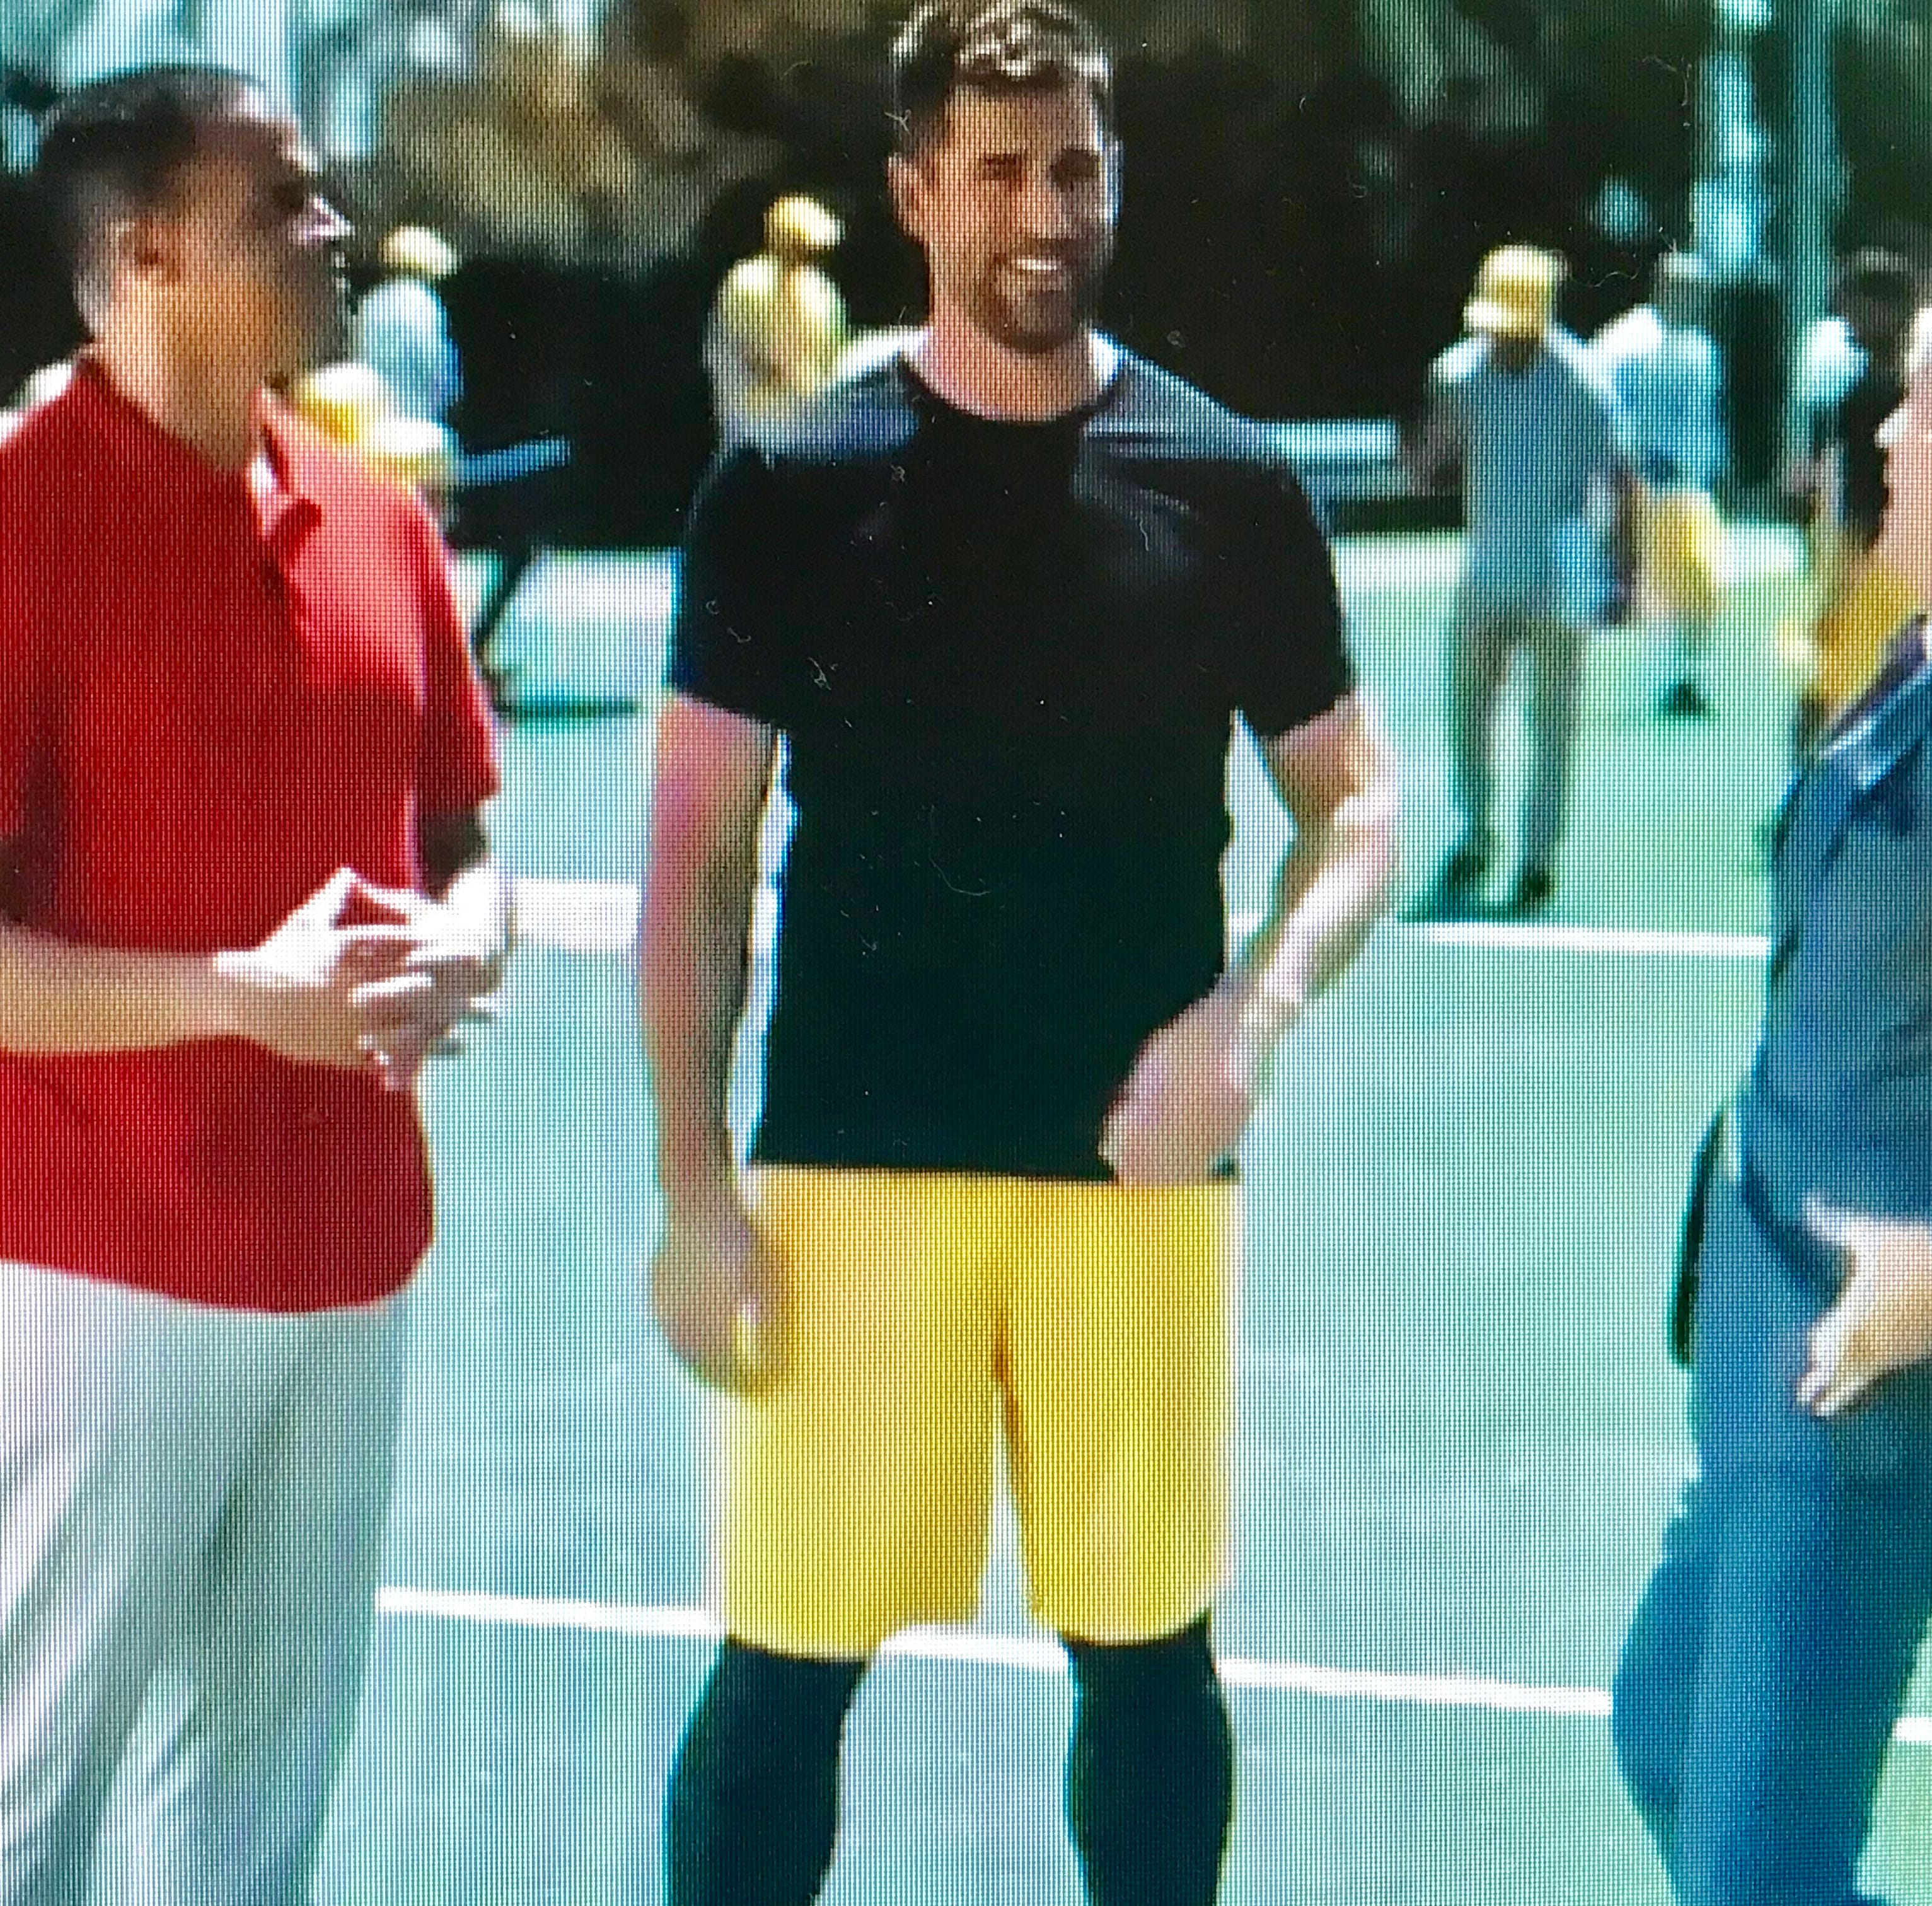 Aaron Rodgers' championship belt move gets cheesy in new State Farm ad